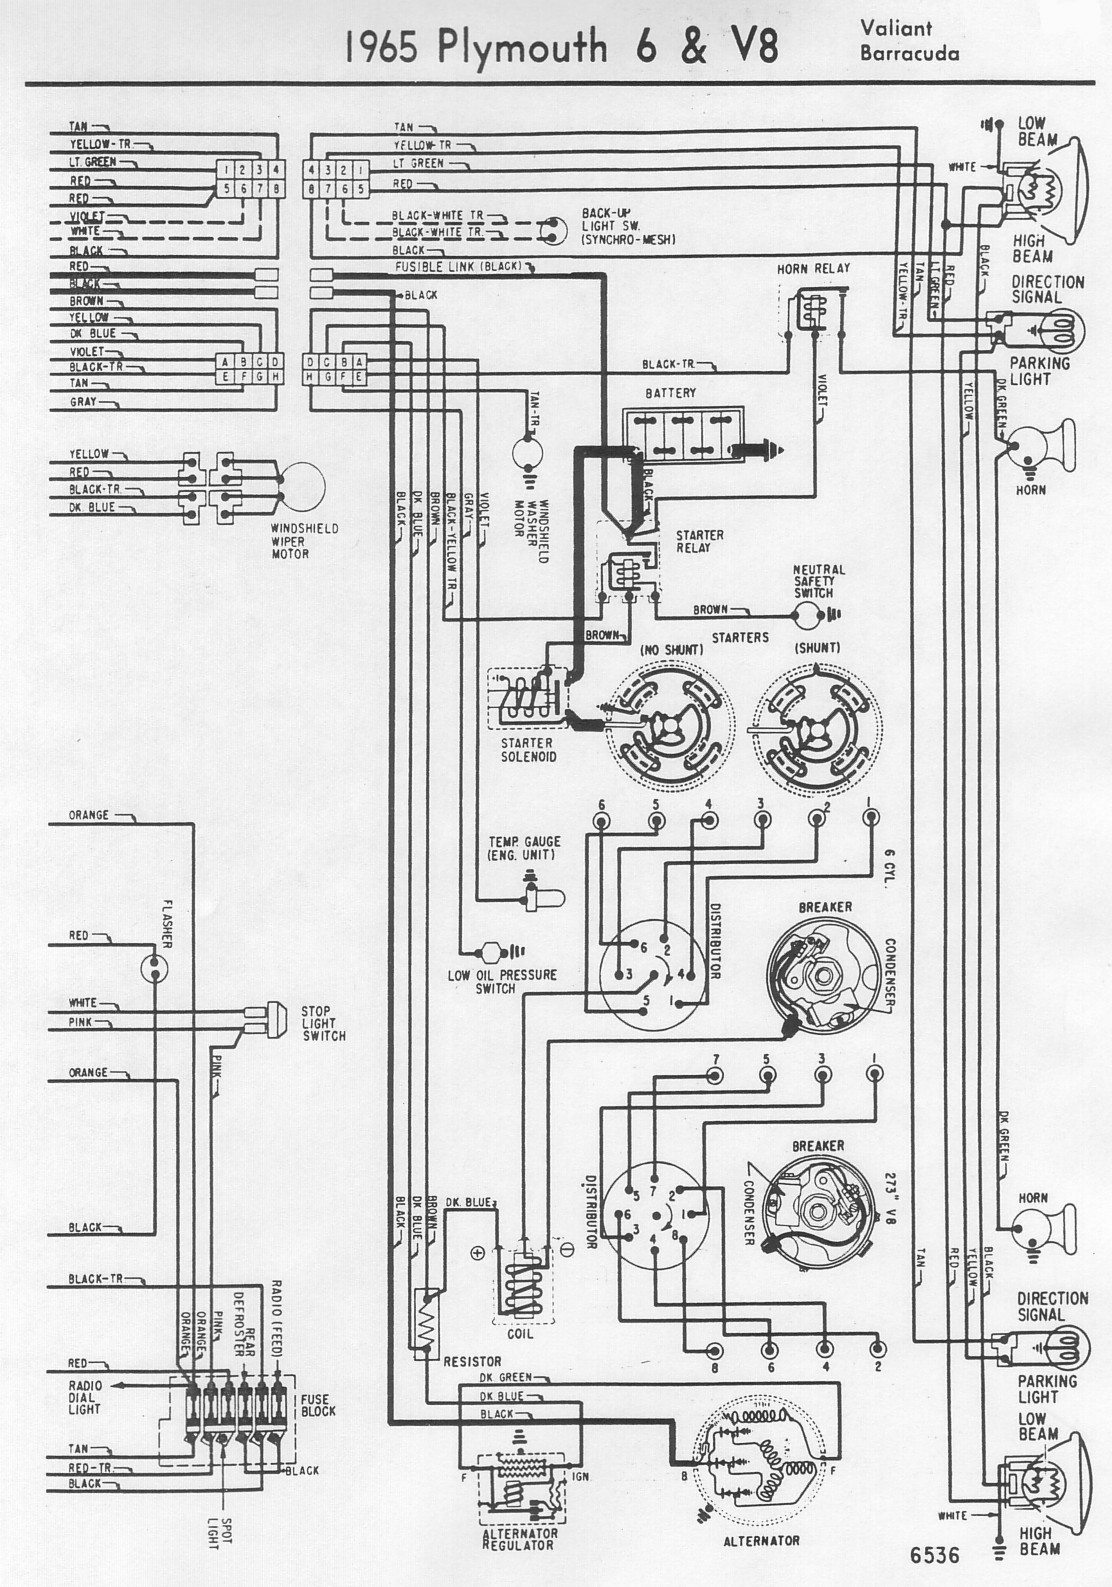 65ValiantBarracudaB wiring diagrams 1971 cuda air conditioning wiring diagram at nearapp.co